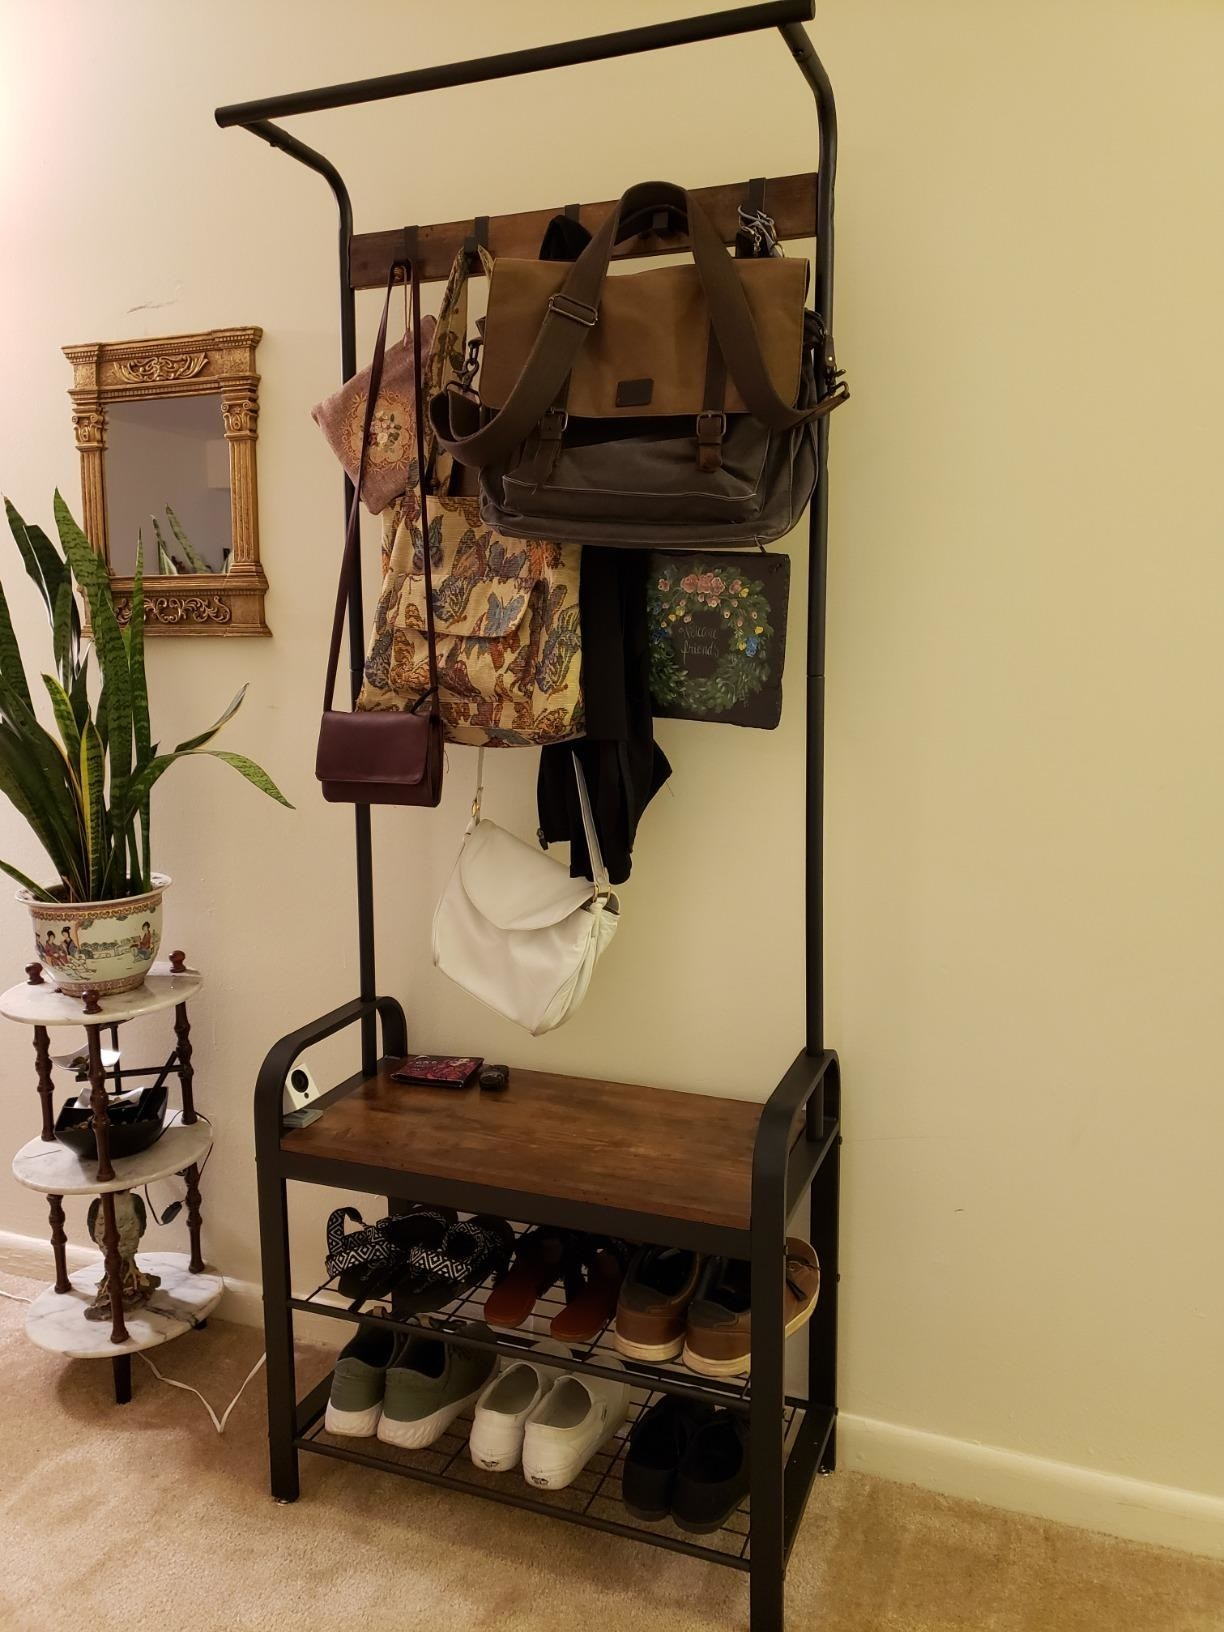 reviewer photo of a coat rack with bags hanging on the racks and shoes on the shelves